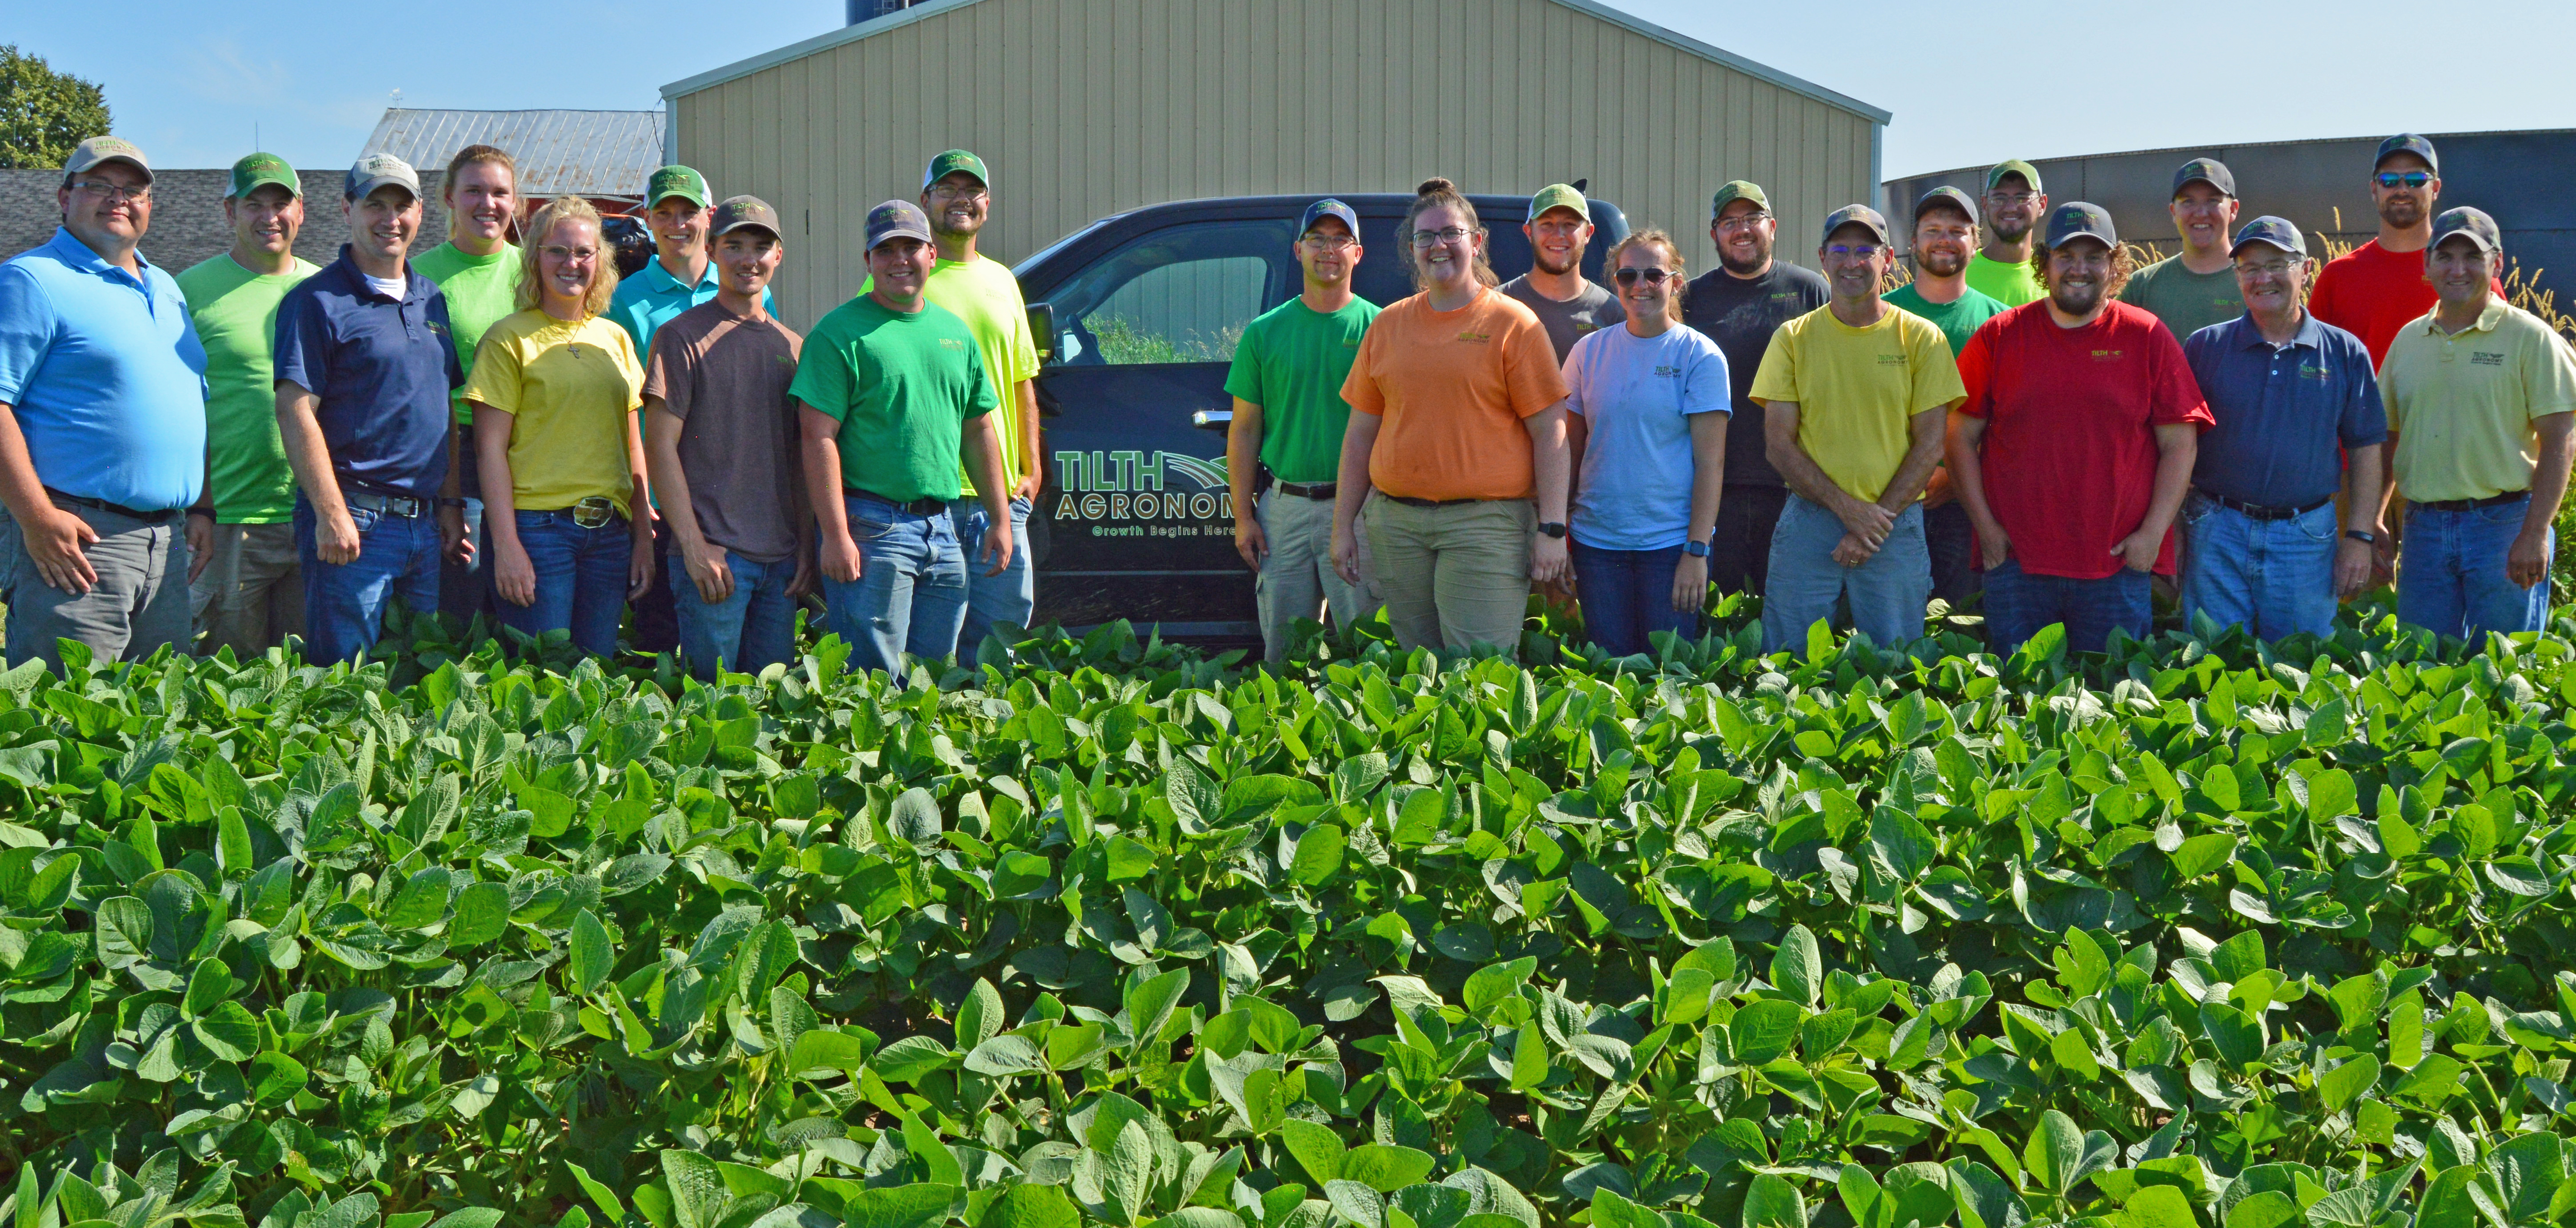 Tilth Agronomy Group Photo